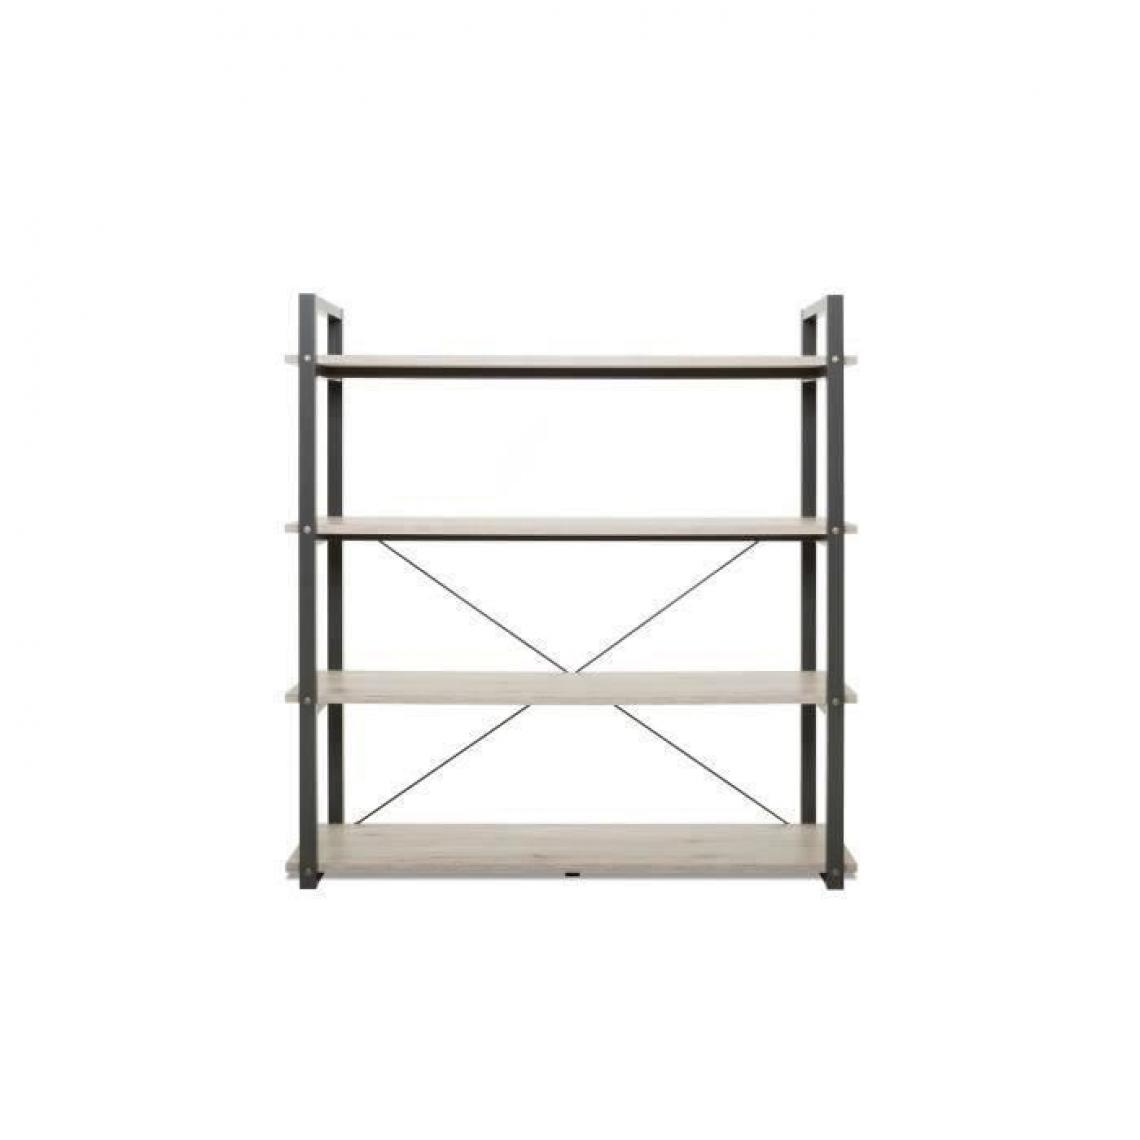 Topdeco BROOKLYN - Bibliotheque style industriel decor chene et anthracite - L 138 cm